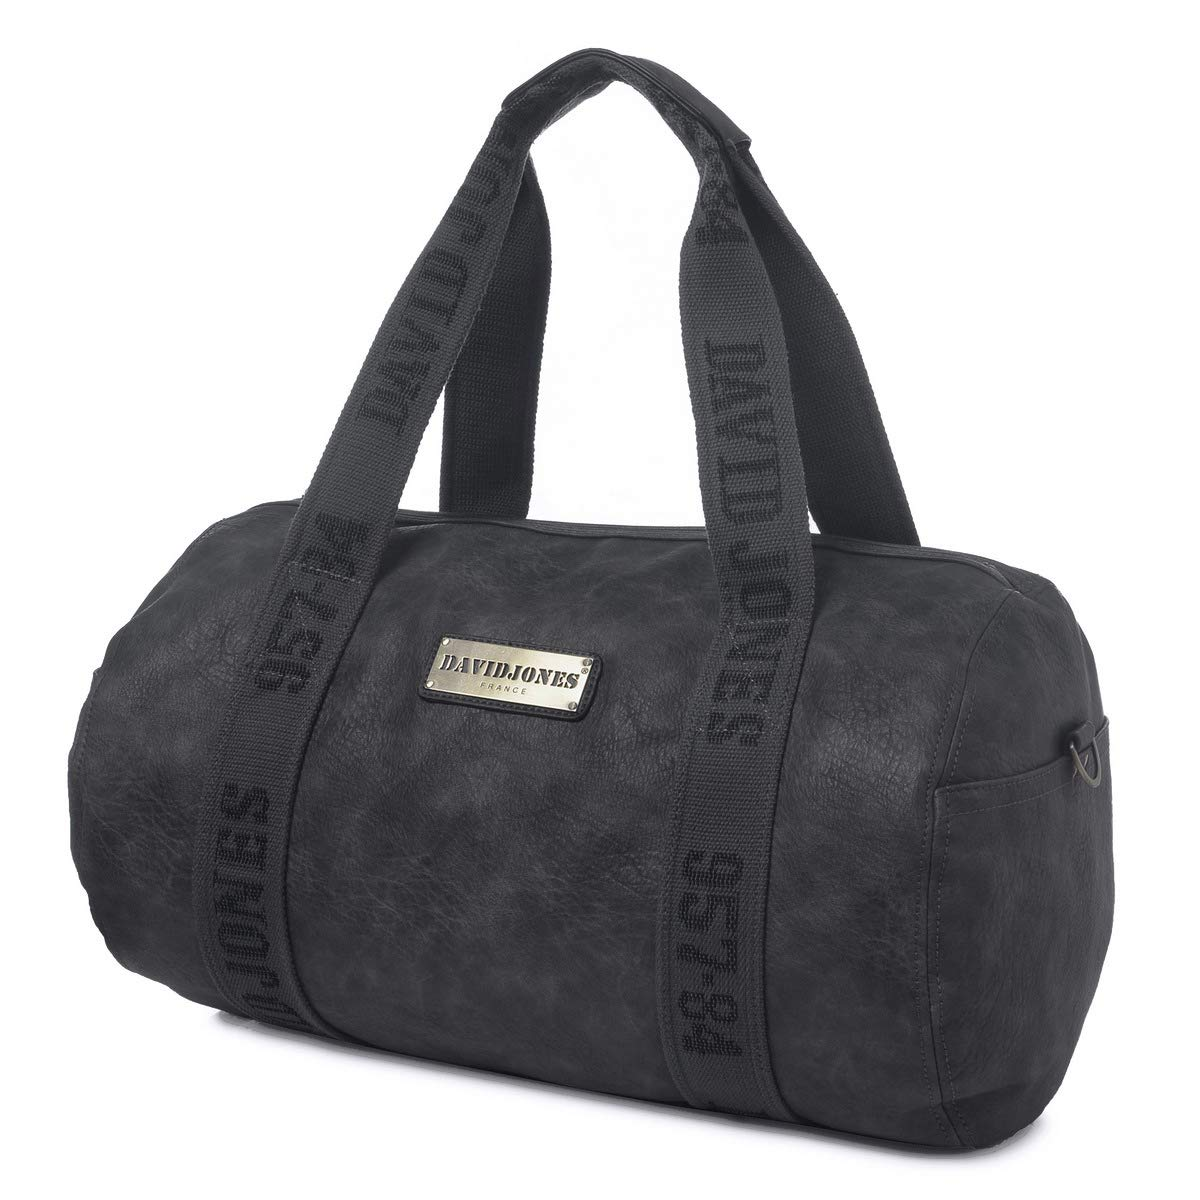 615b0a8103 David Jones - Women s Large Travel Bag - Hand Luggage Duffle Tote Bag - PU  Leather Sports Gym Bags - Large Capacity Weekender Bags Men -  Multifunctional ...